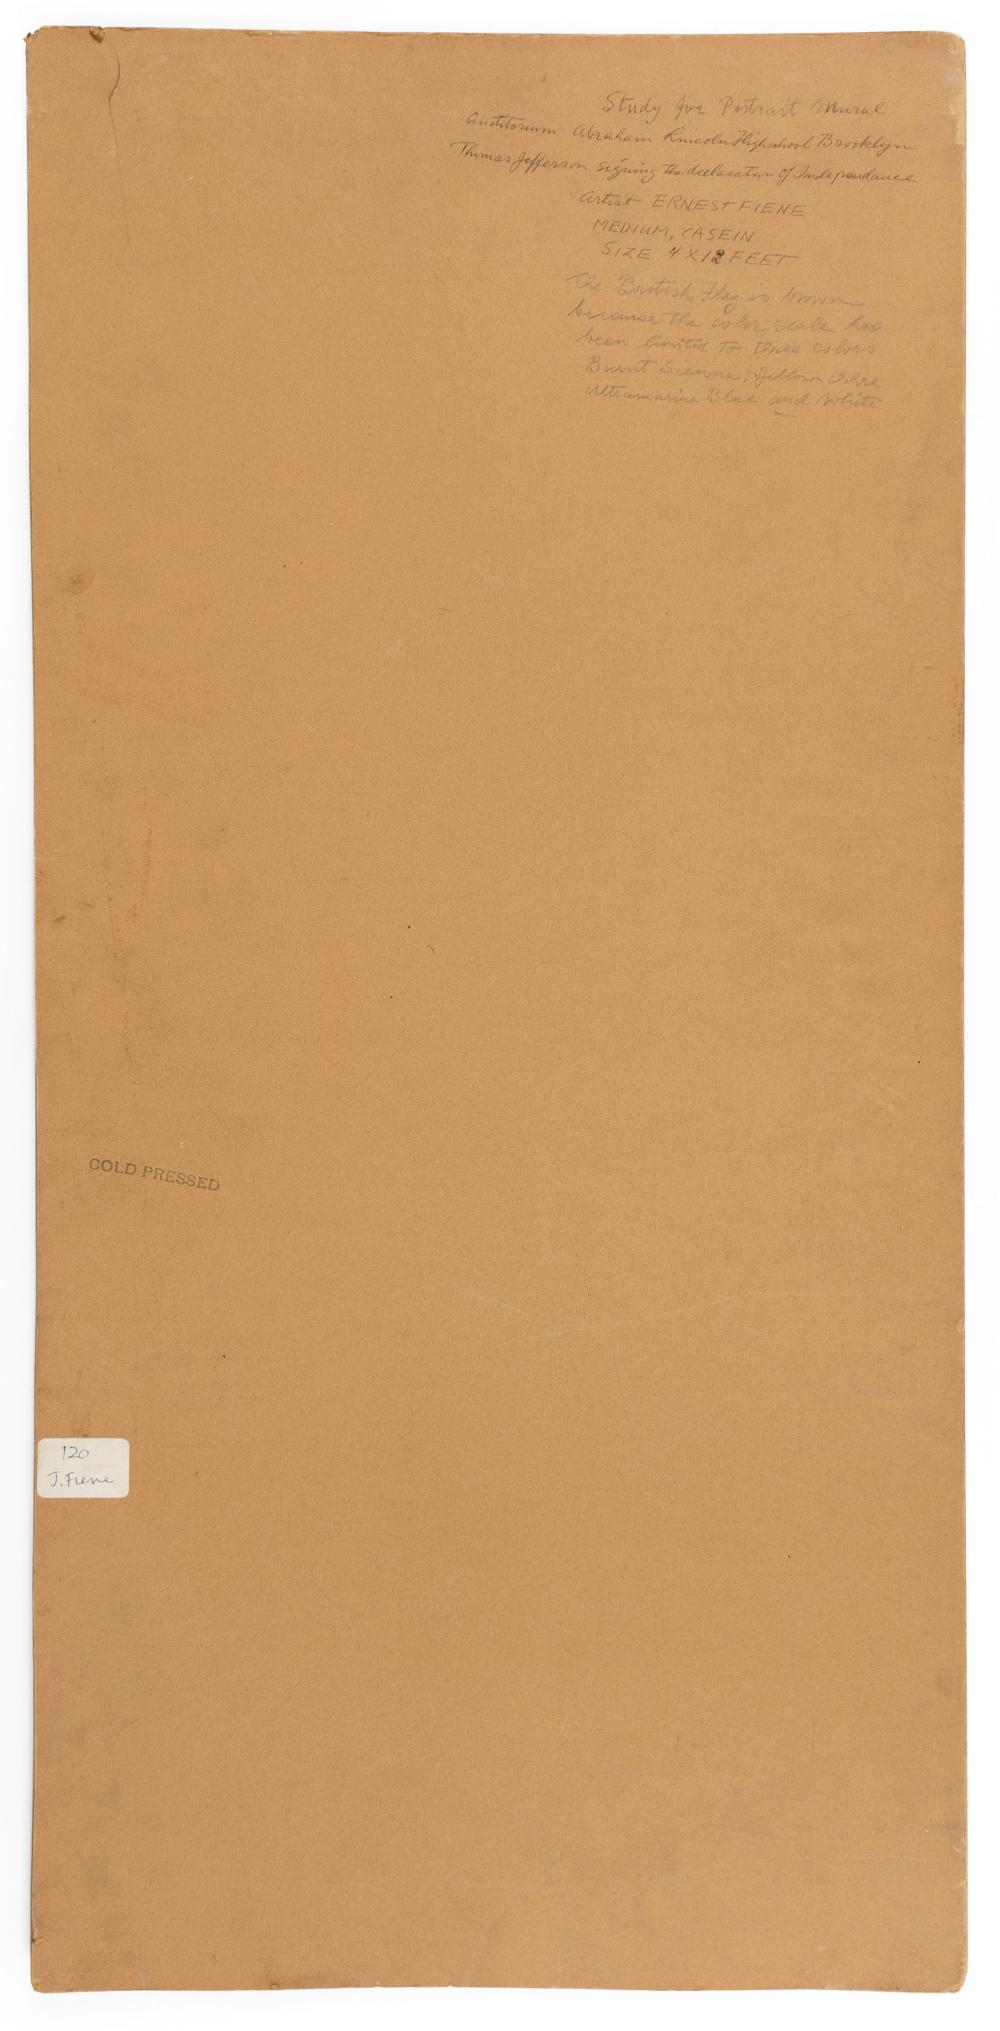 ERNEST FIENE, New York/Germany, 1894-1965, Study for portrait mural of Thomas Jefferson., Casein on cold pressed board, image 26.13